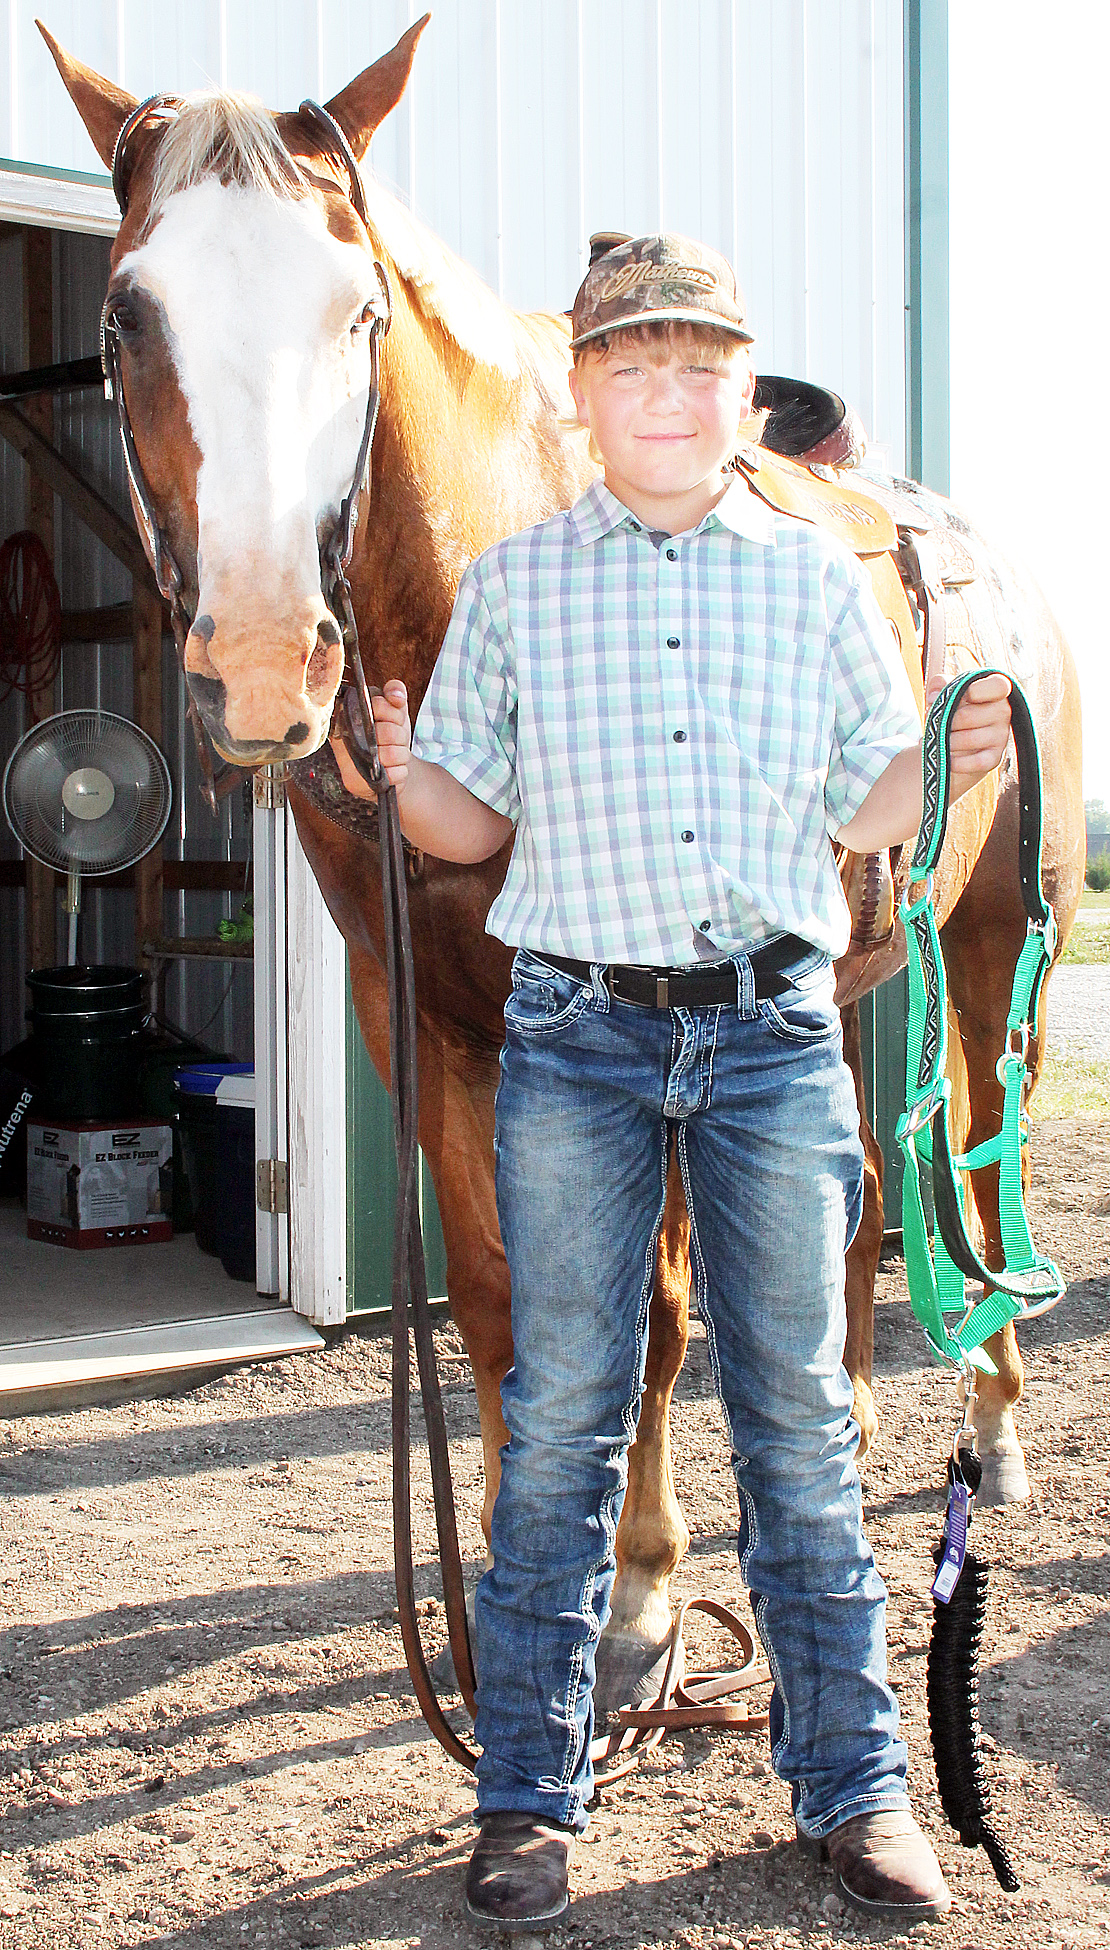 Jarett Abel of the Soldier Boosters won the western pleasure, horsemanship, trail and reining competitions at the show for competitors aged 10-13.